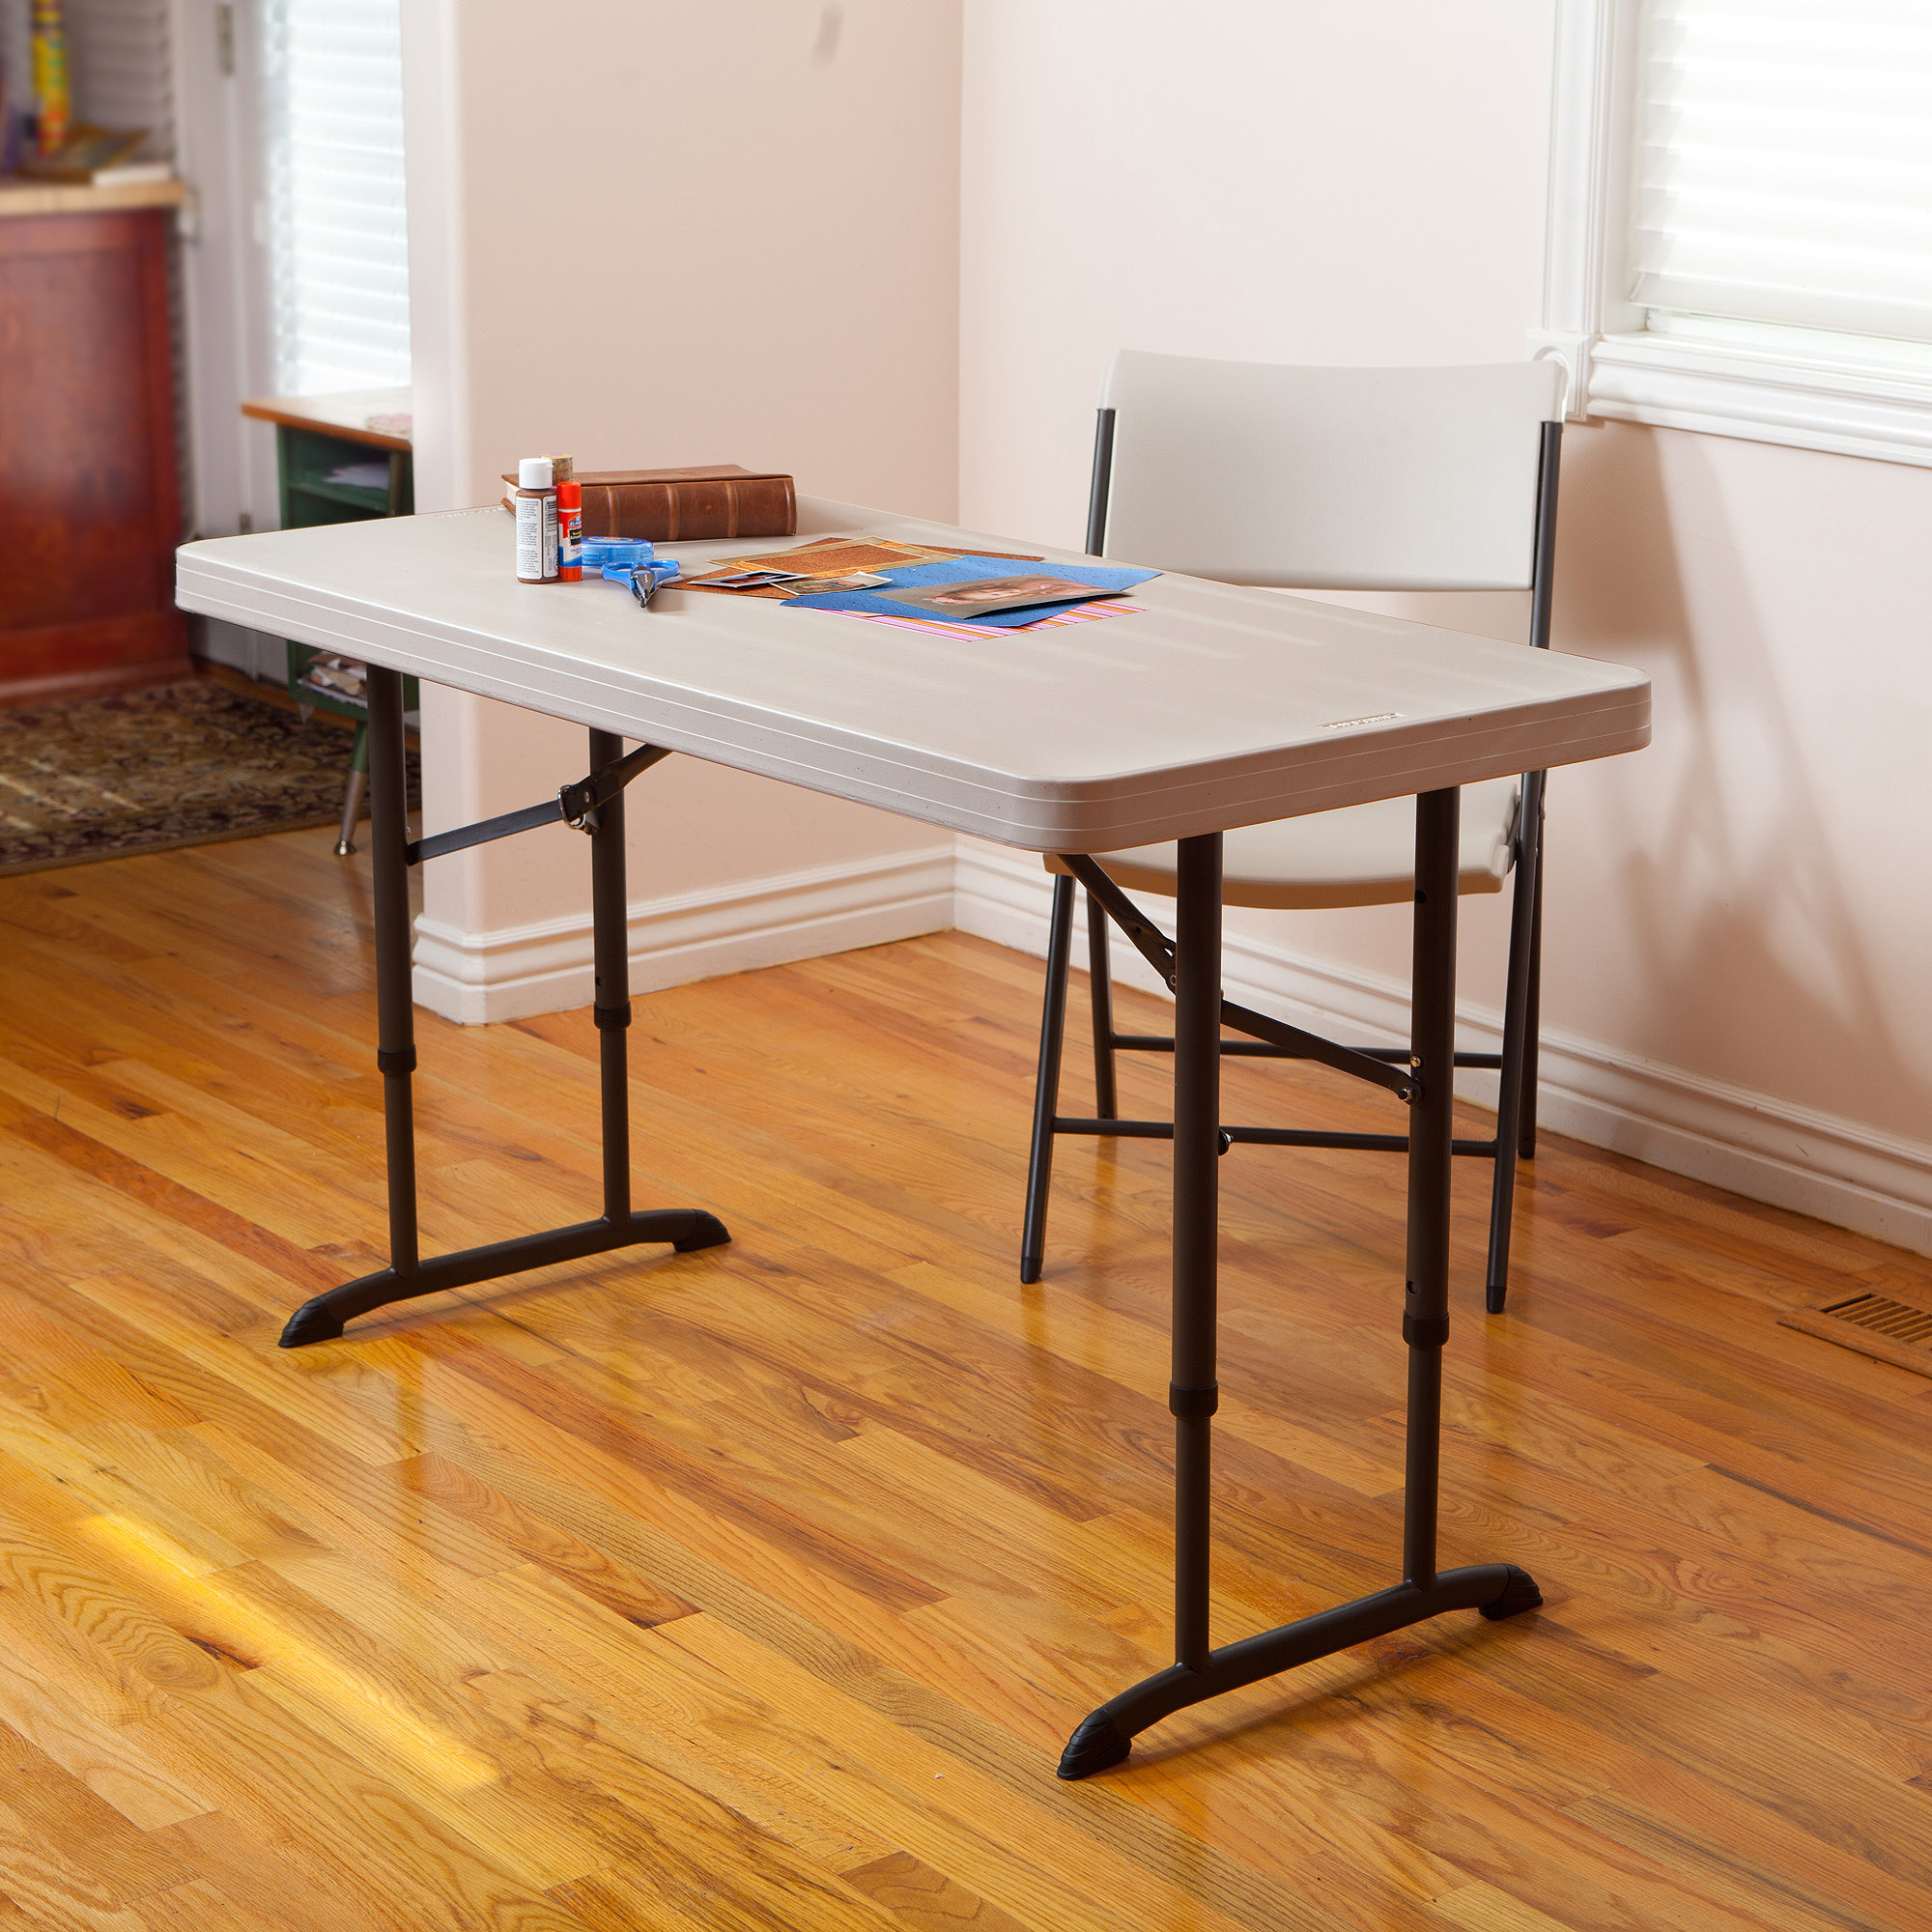 Lifetime 4' Adjustable Table, Almond